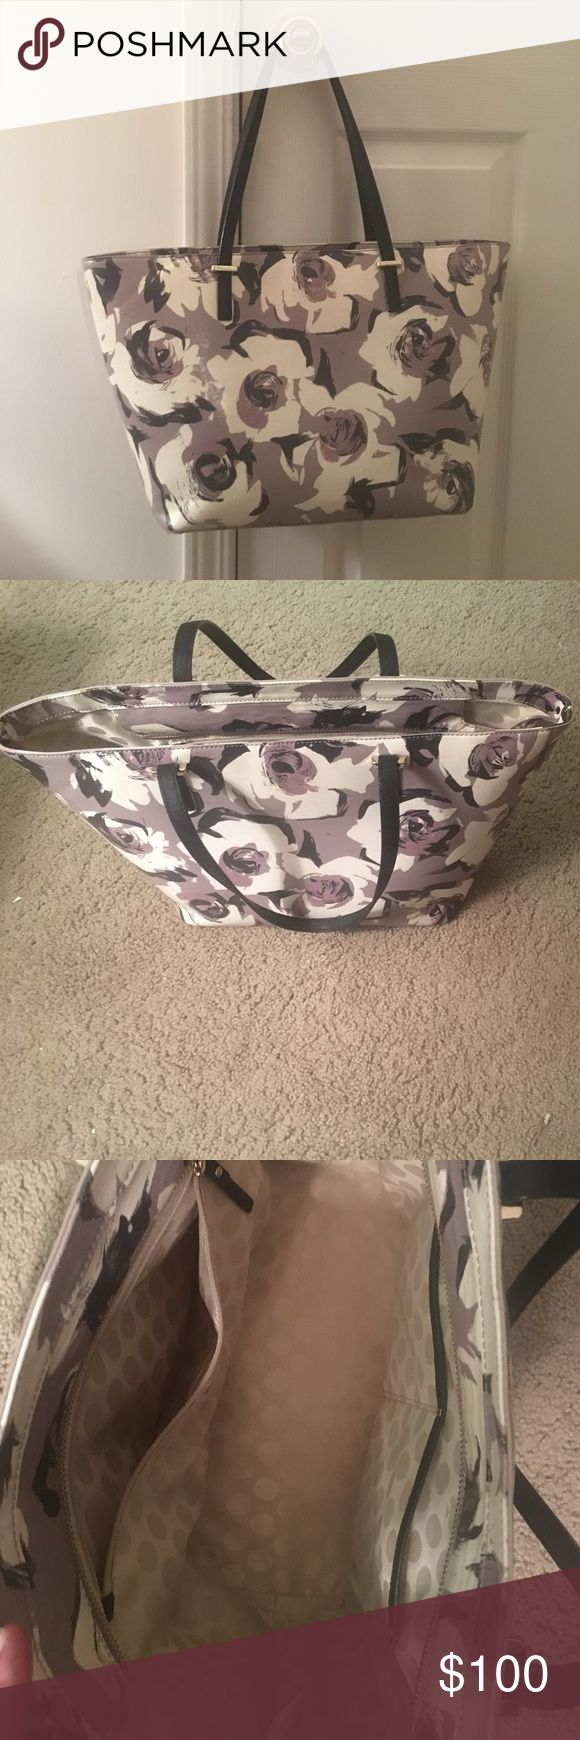 Kate Spade grey and black floral tote Really cute tote bag, not the original buyer but in great condition. The outside pattern is predominately grey-purple with white and black flowers, the inside is lined with cream polka dots. Picture included shows size reference kate spade Bags